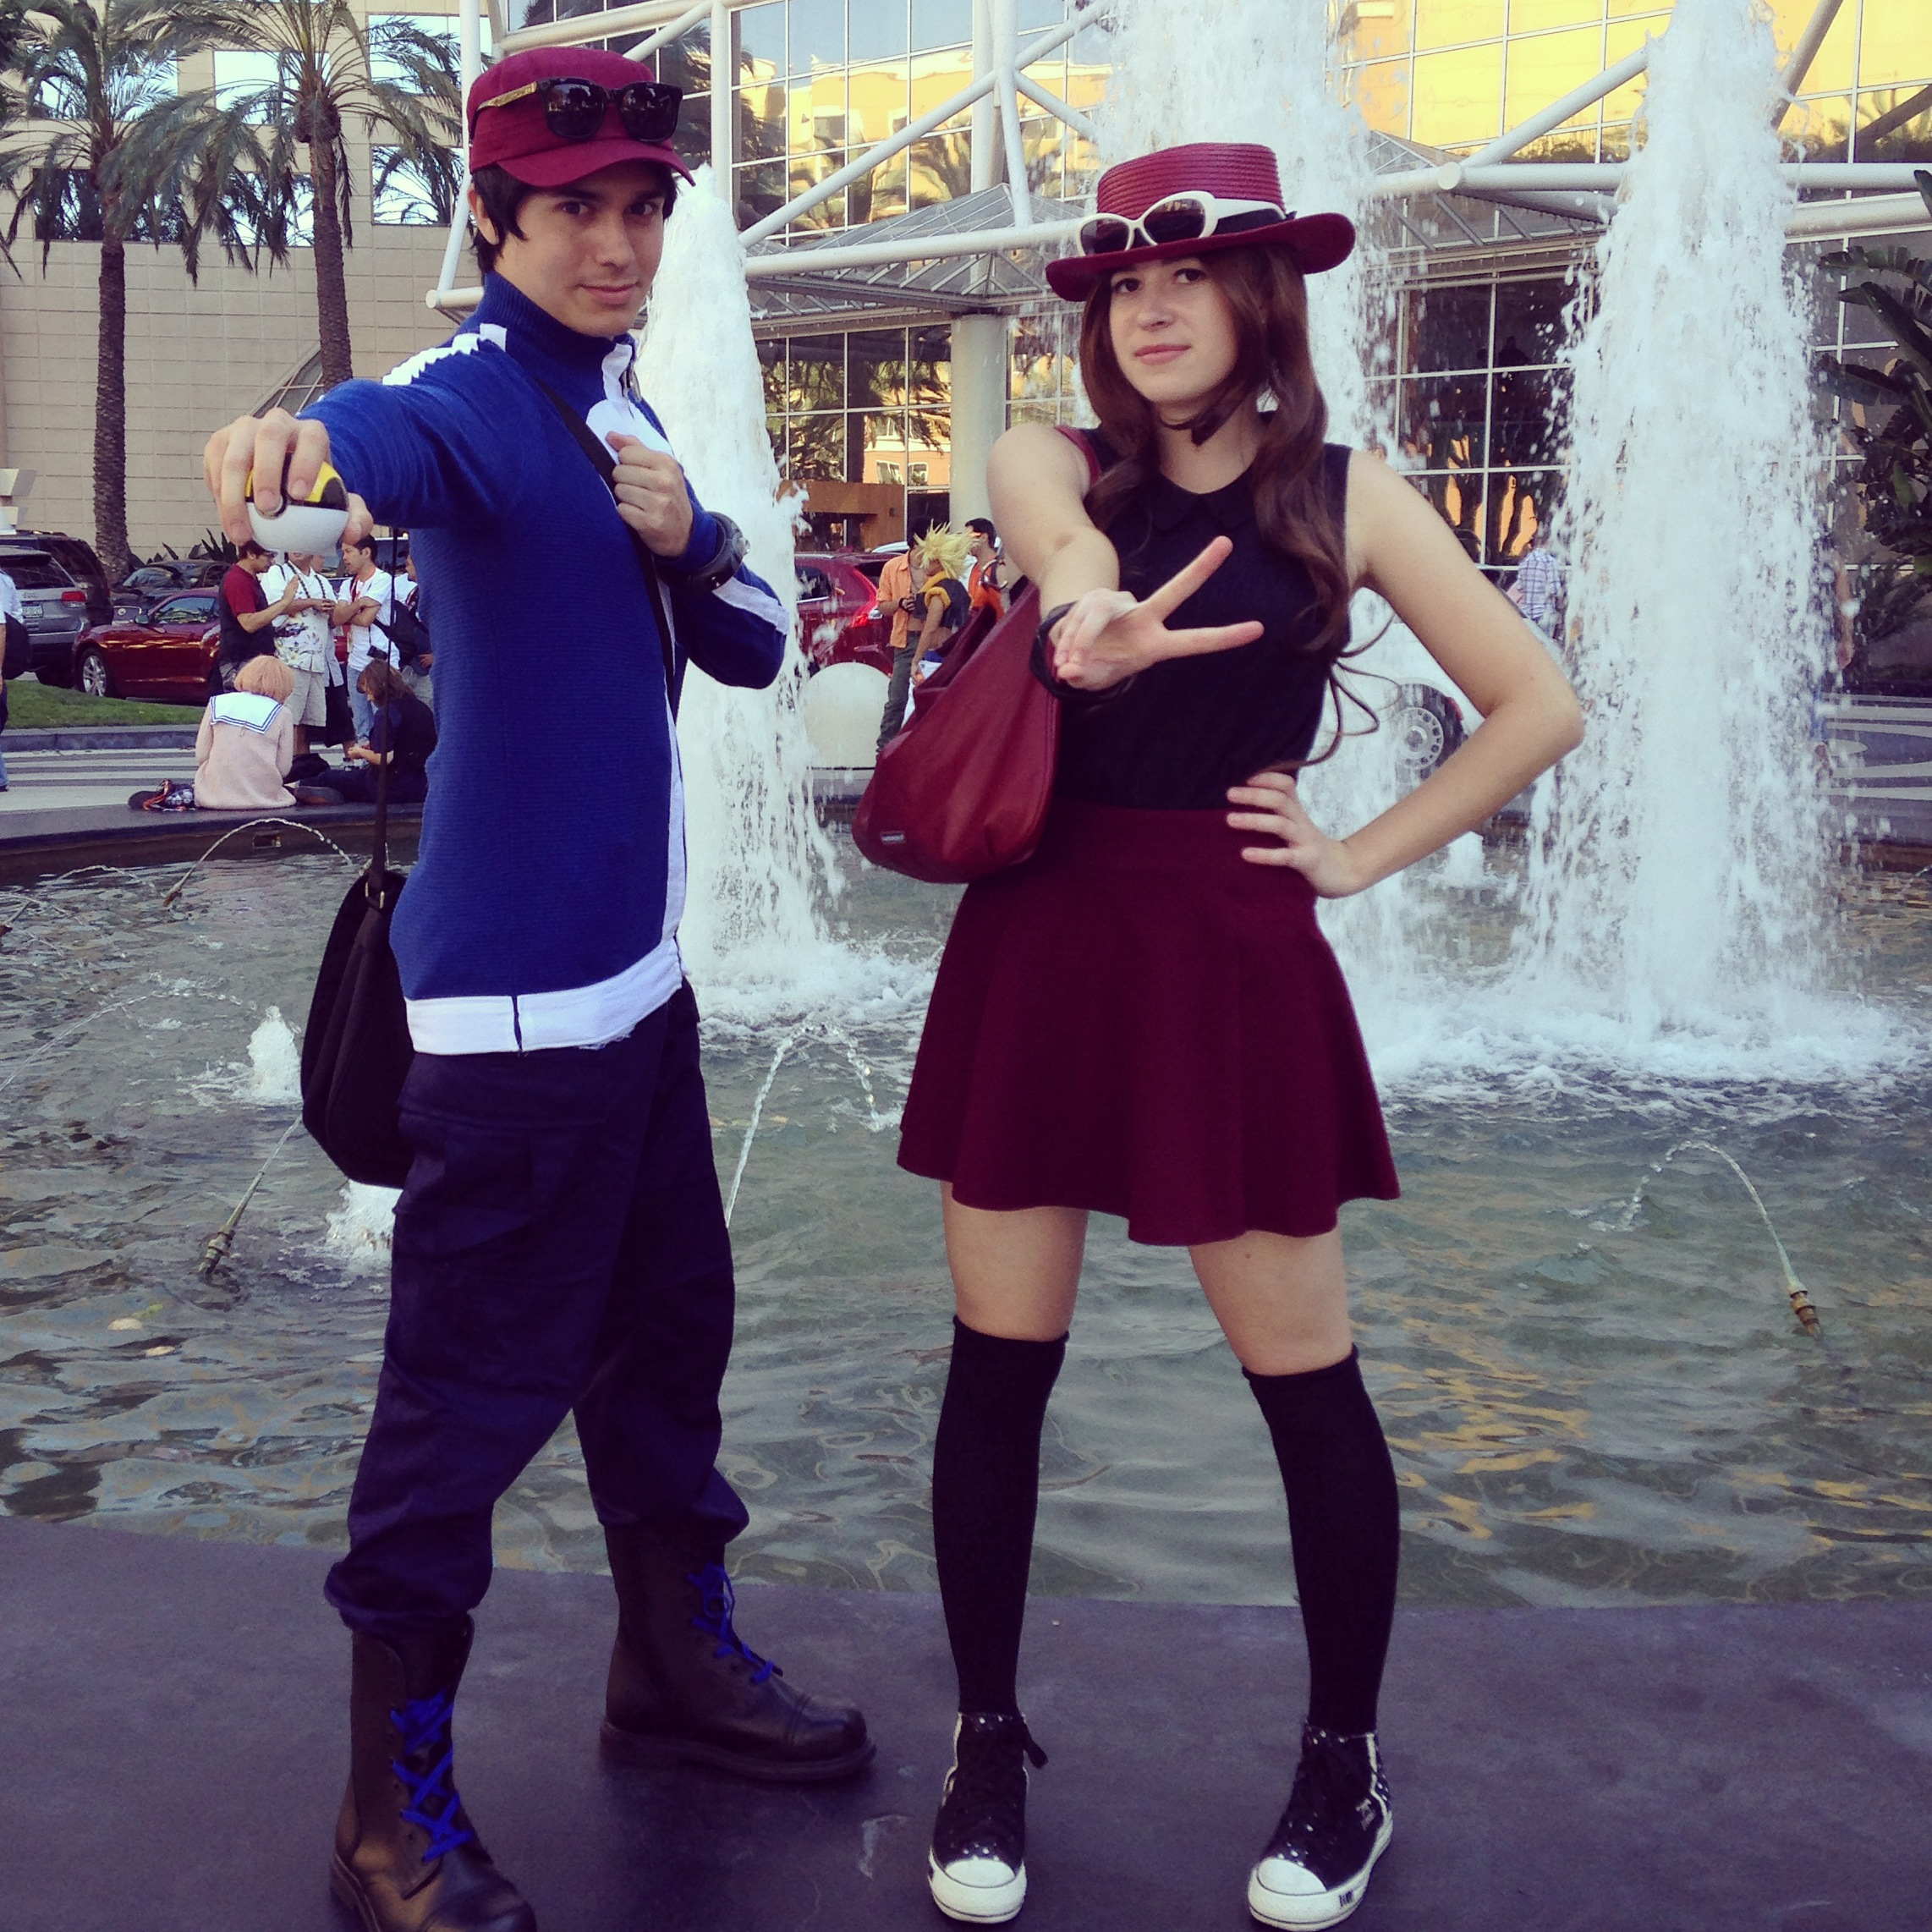 ... Pokemon Trainers X and Y Serena and Calem Cosplay by kmercks  sc 1 st  DeviantArt & Pokemon Trainers X and Y Serena and Calem Cosplay by kmercks on ...